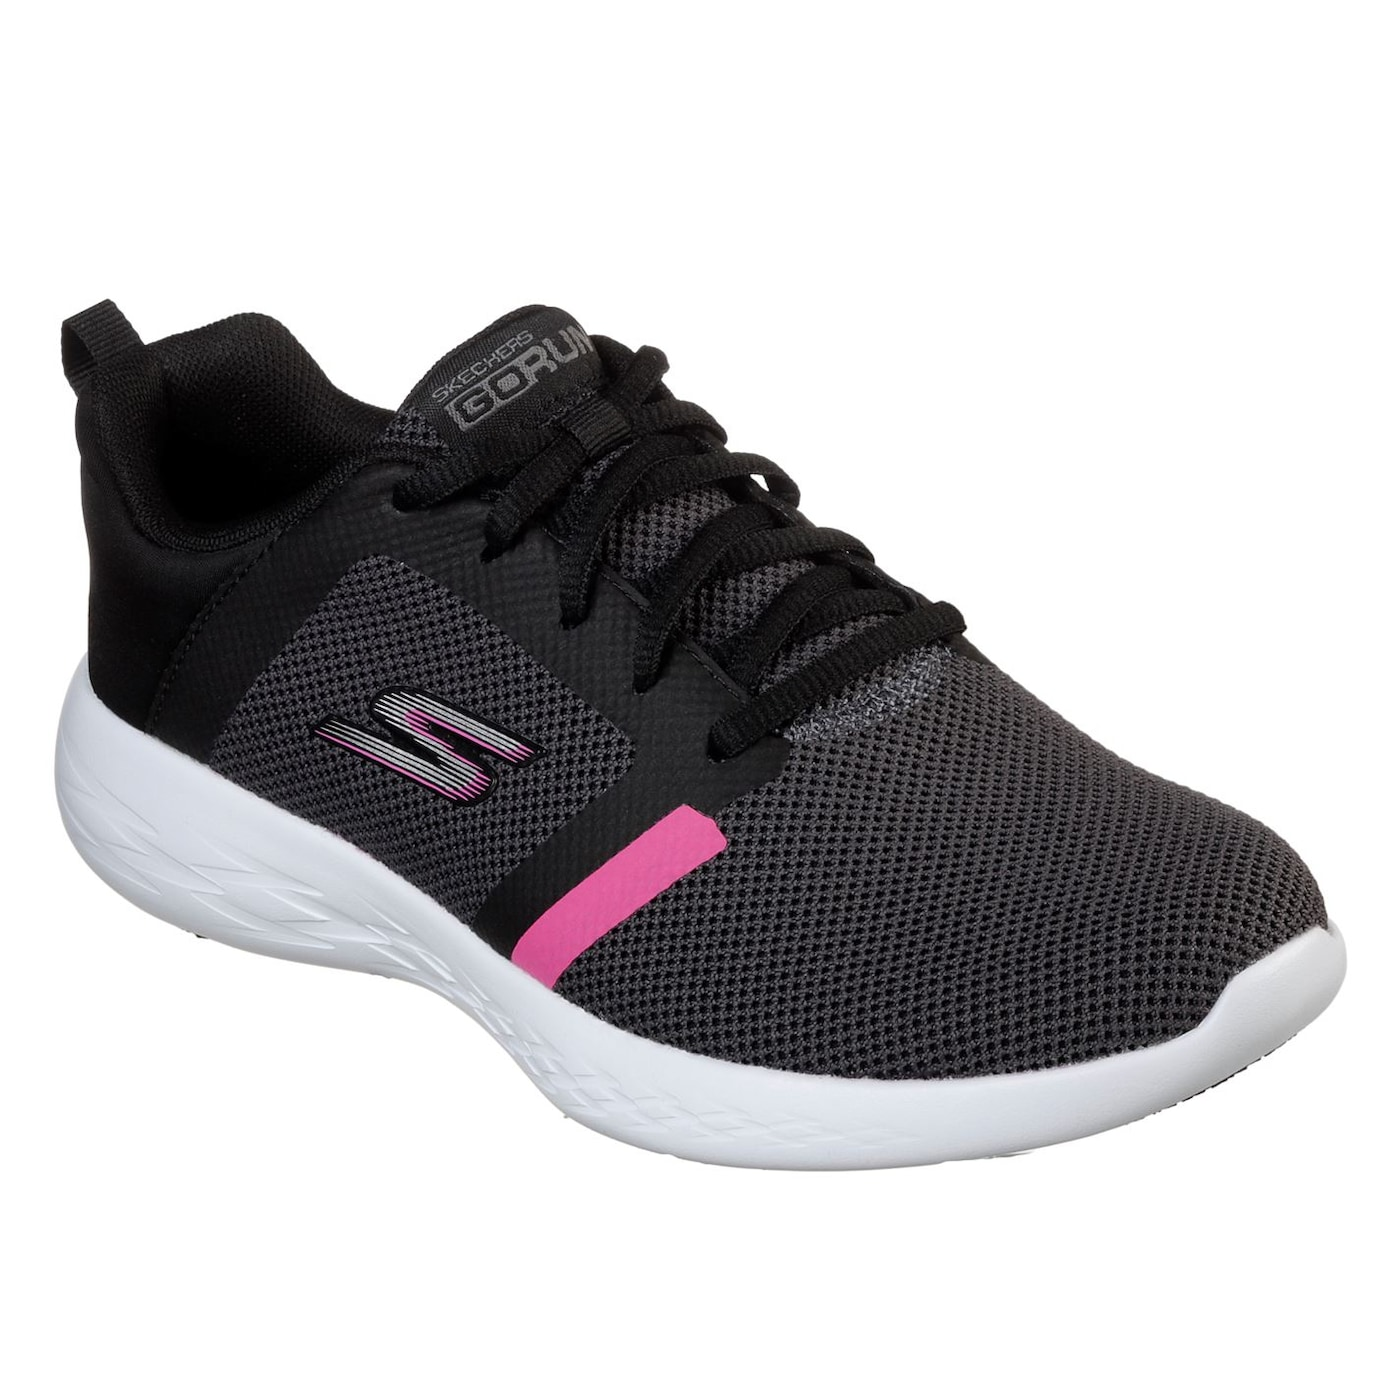 Skechers GoRun 600 Trainers Ladies